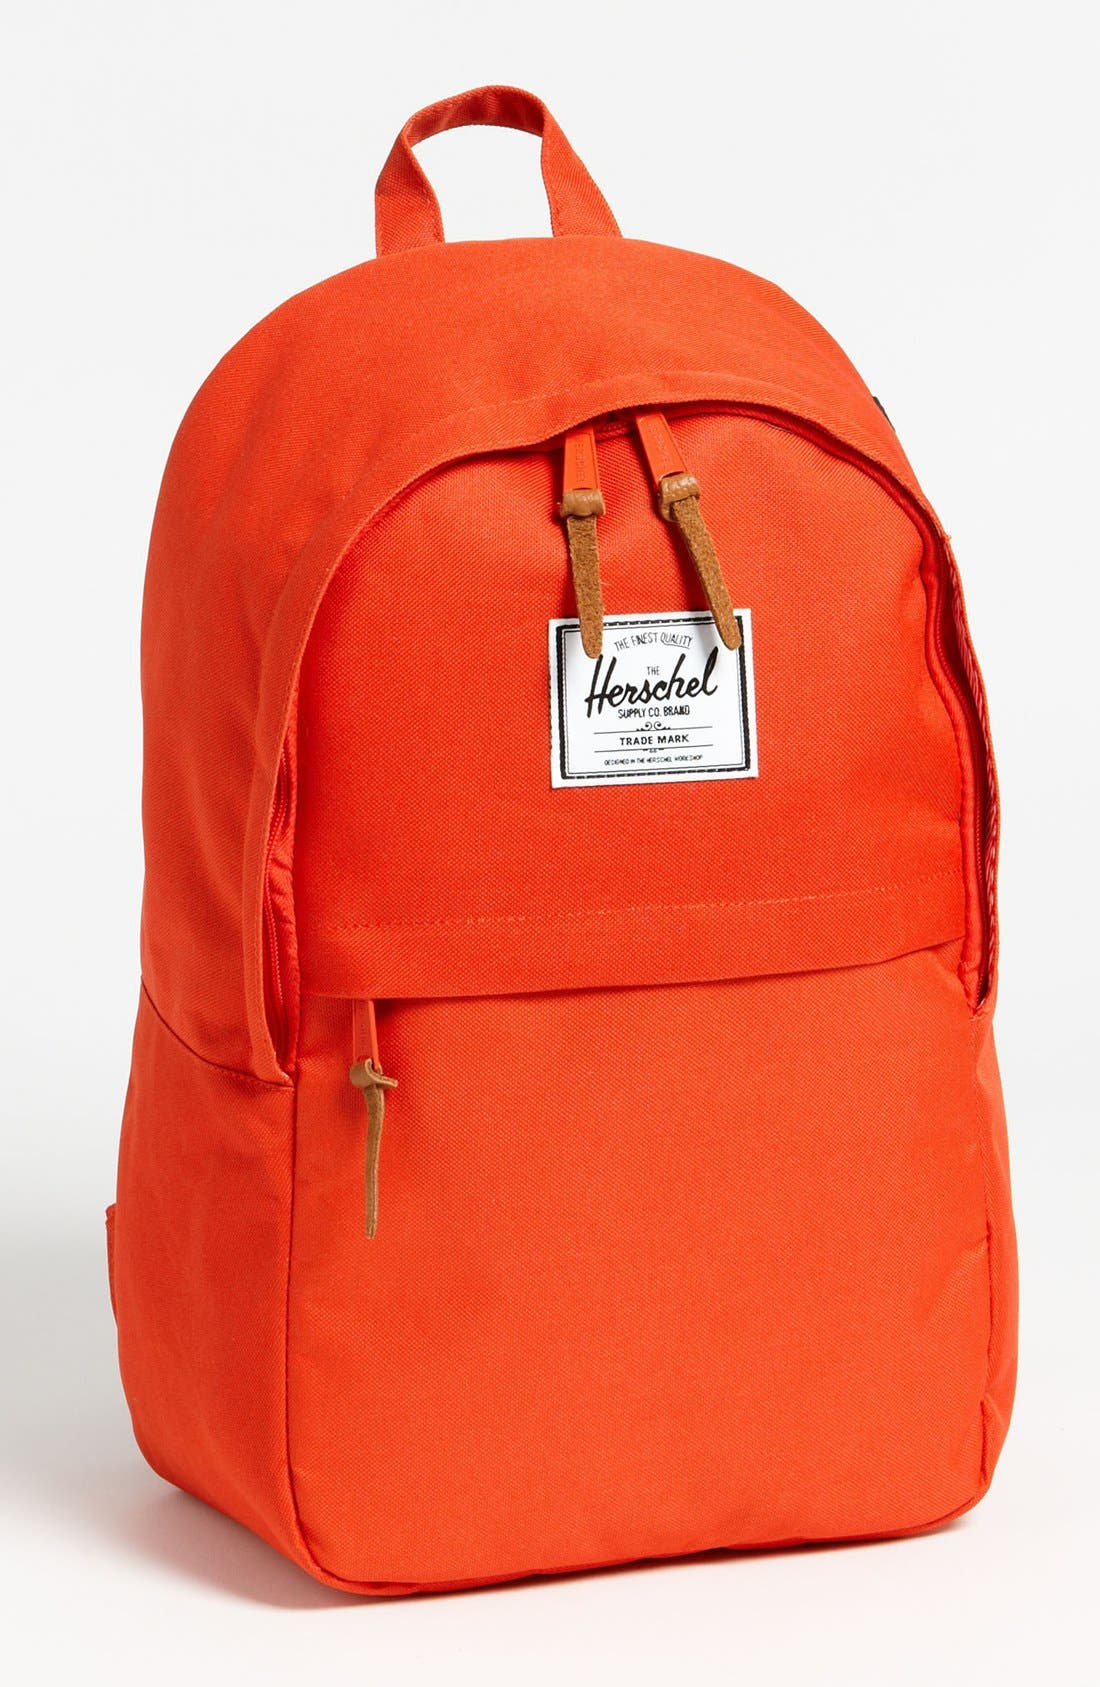 Main Image - Herschel Supply Co. 'Standard' Backpack